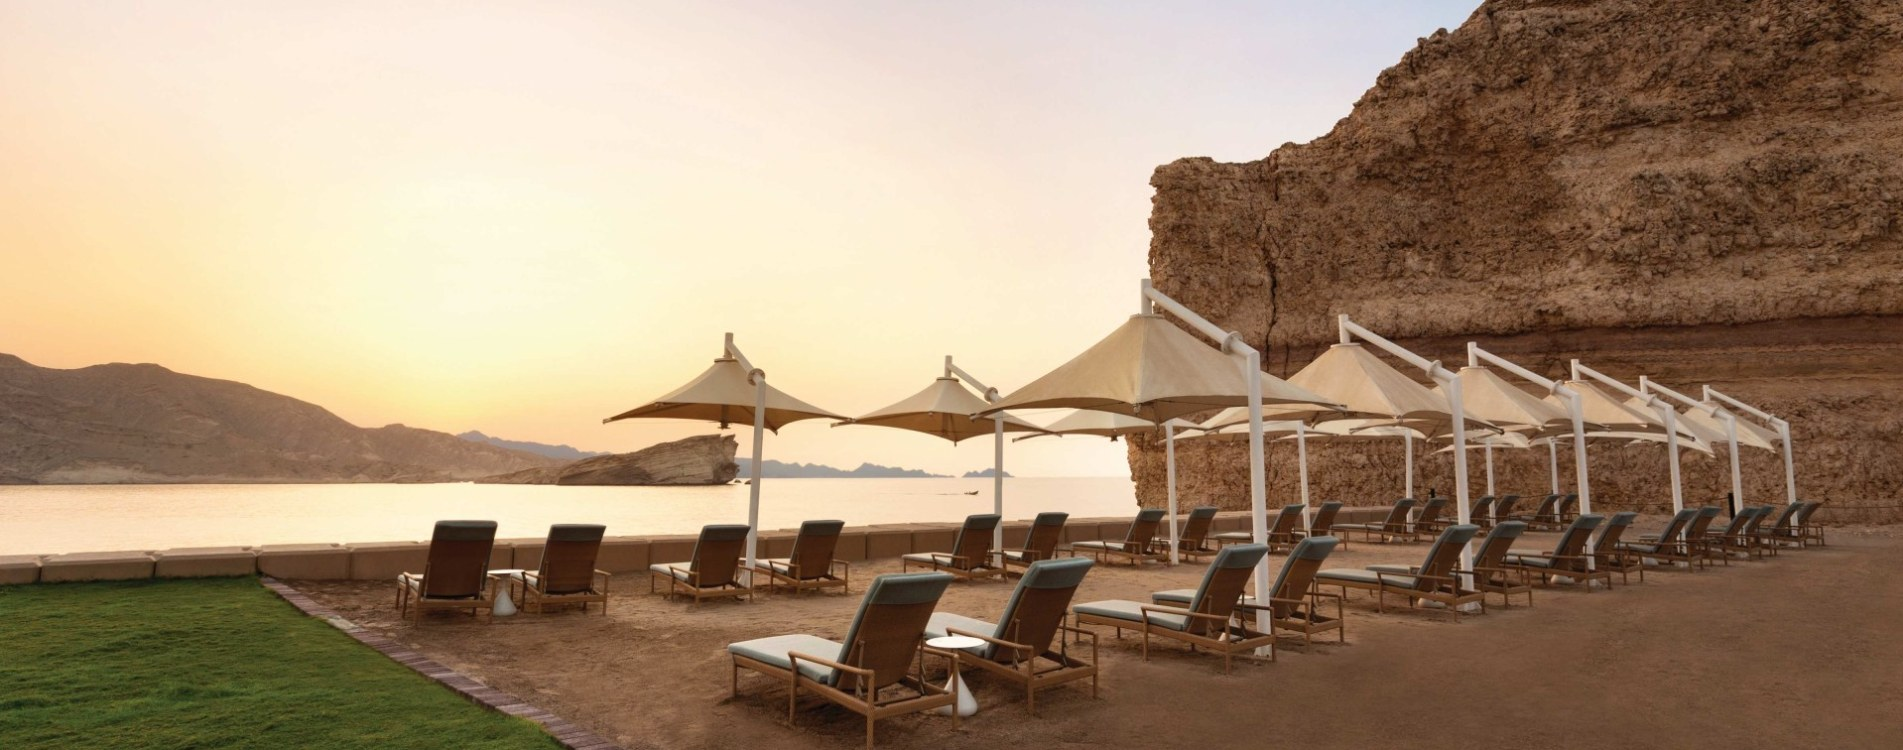 Shangri-La-Al-Husn-Resort-and-Spa-Strand-Strandliegen-Oman.jpg